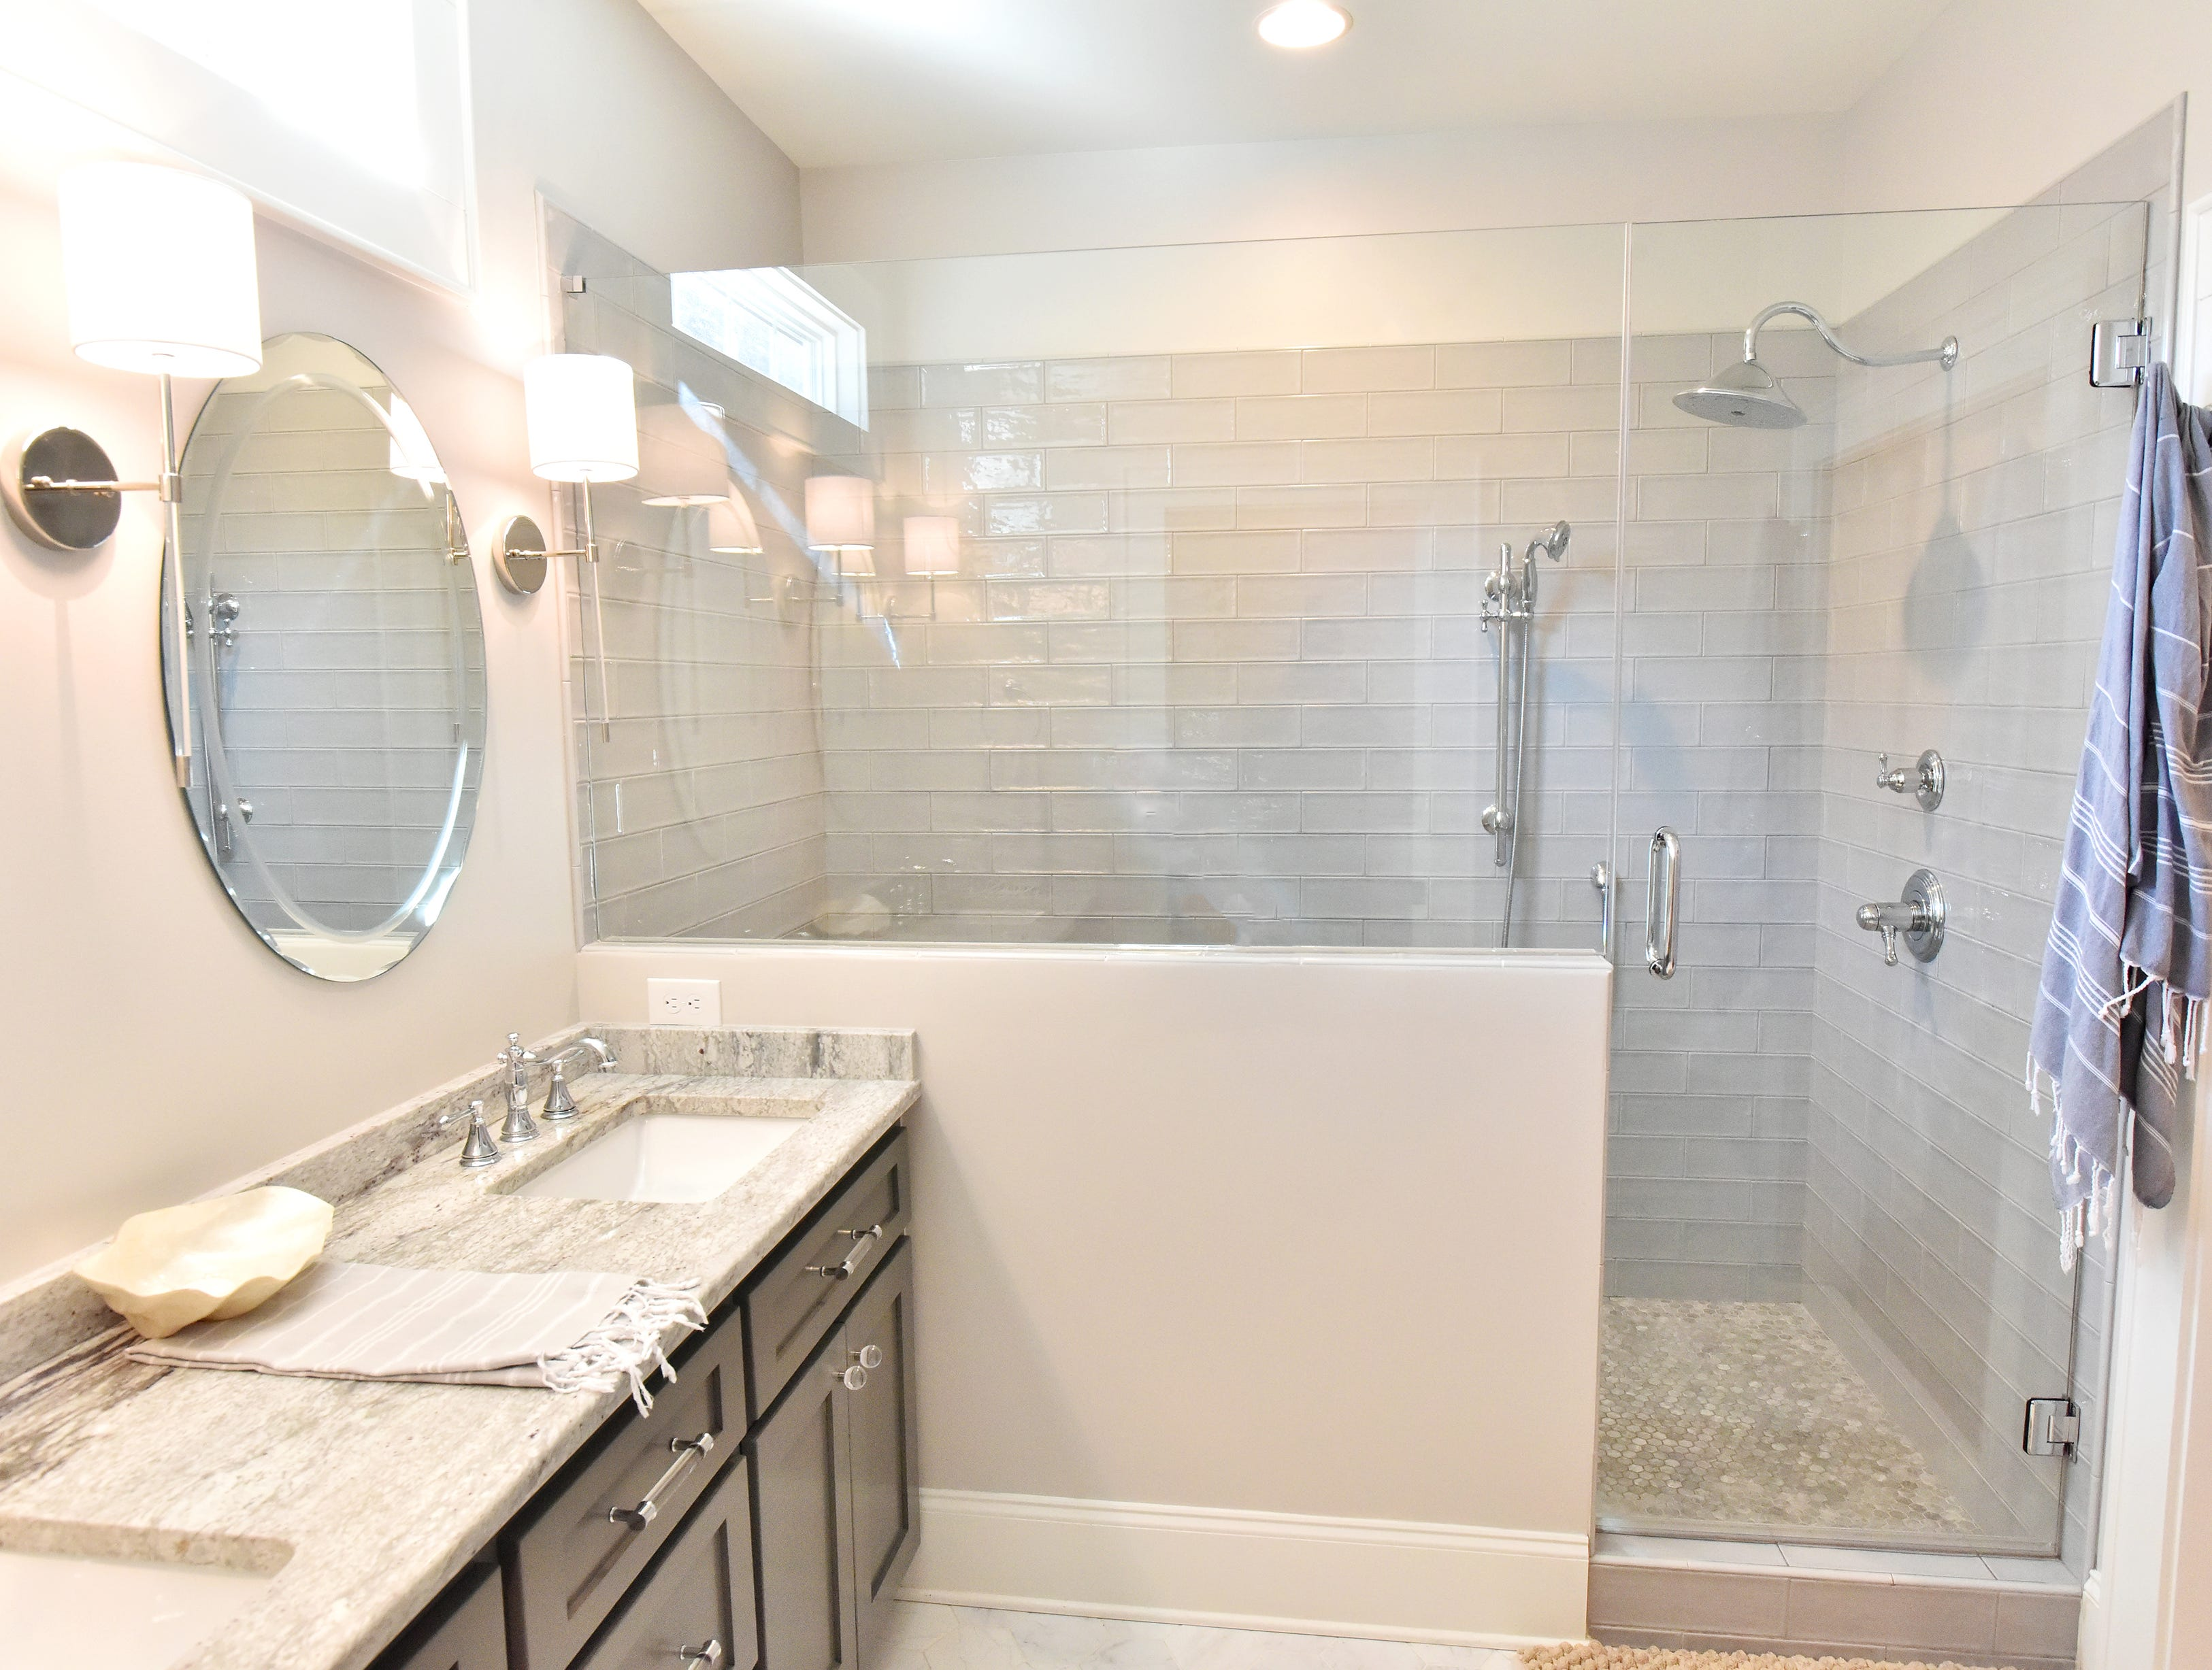 The remodeled master bathroom.